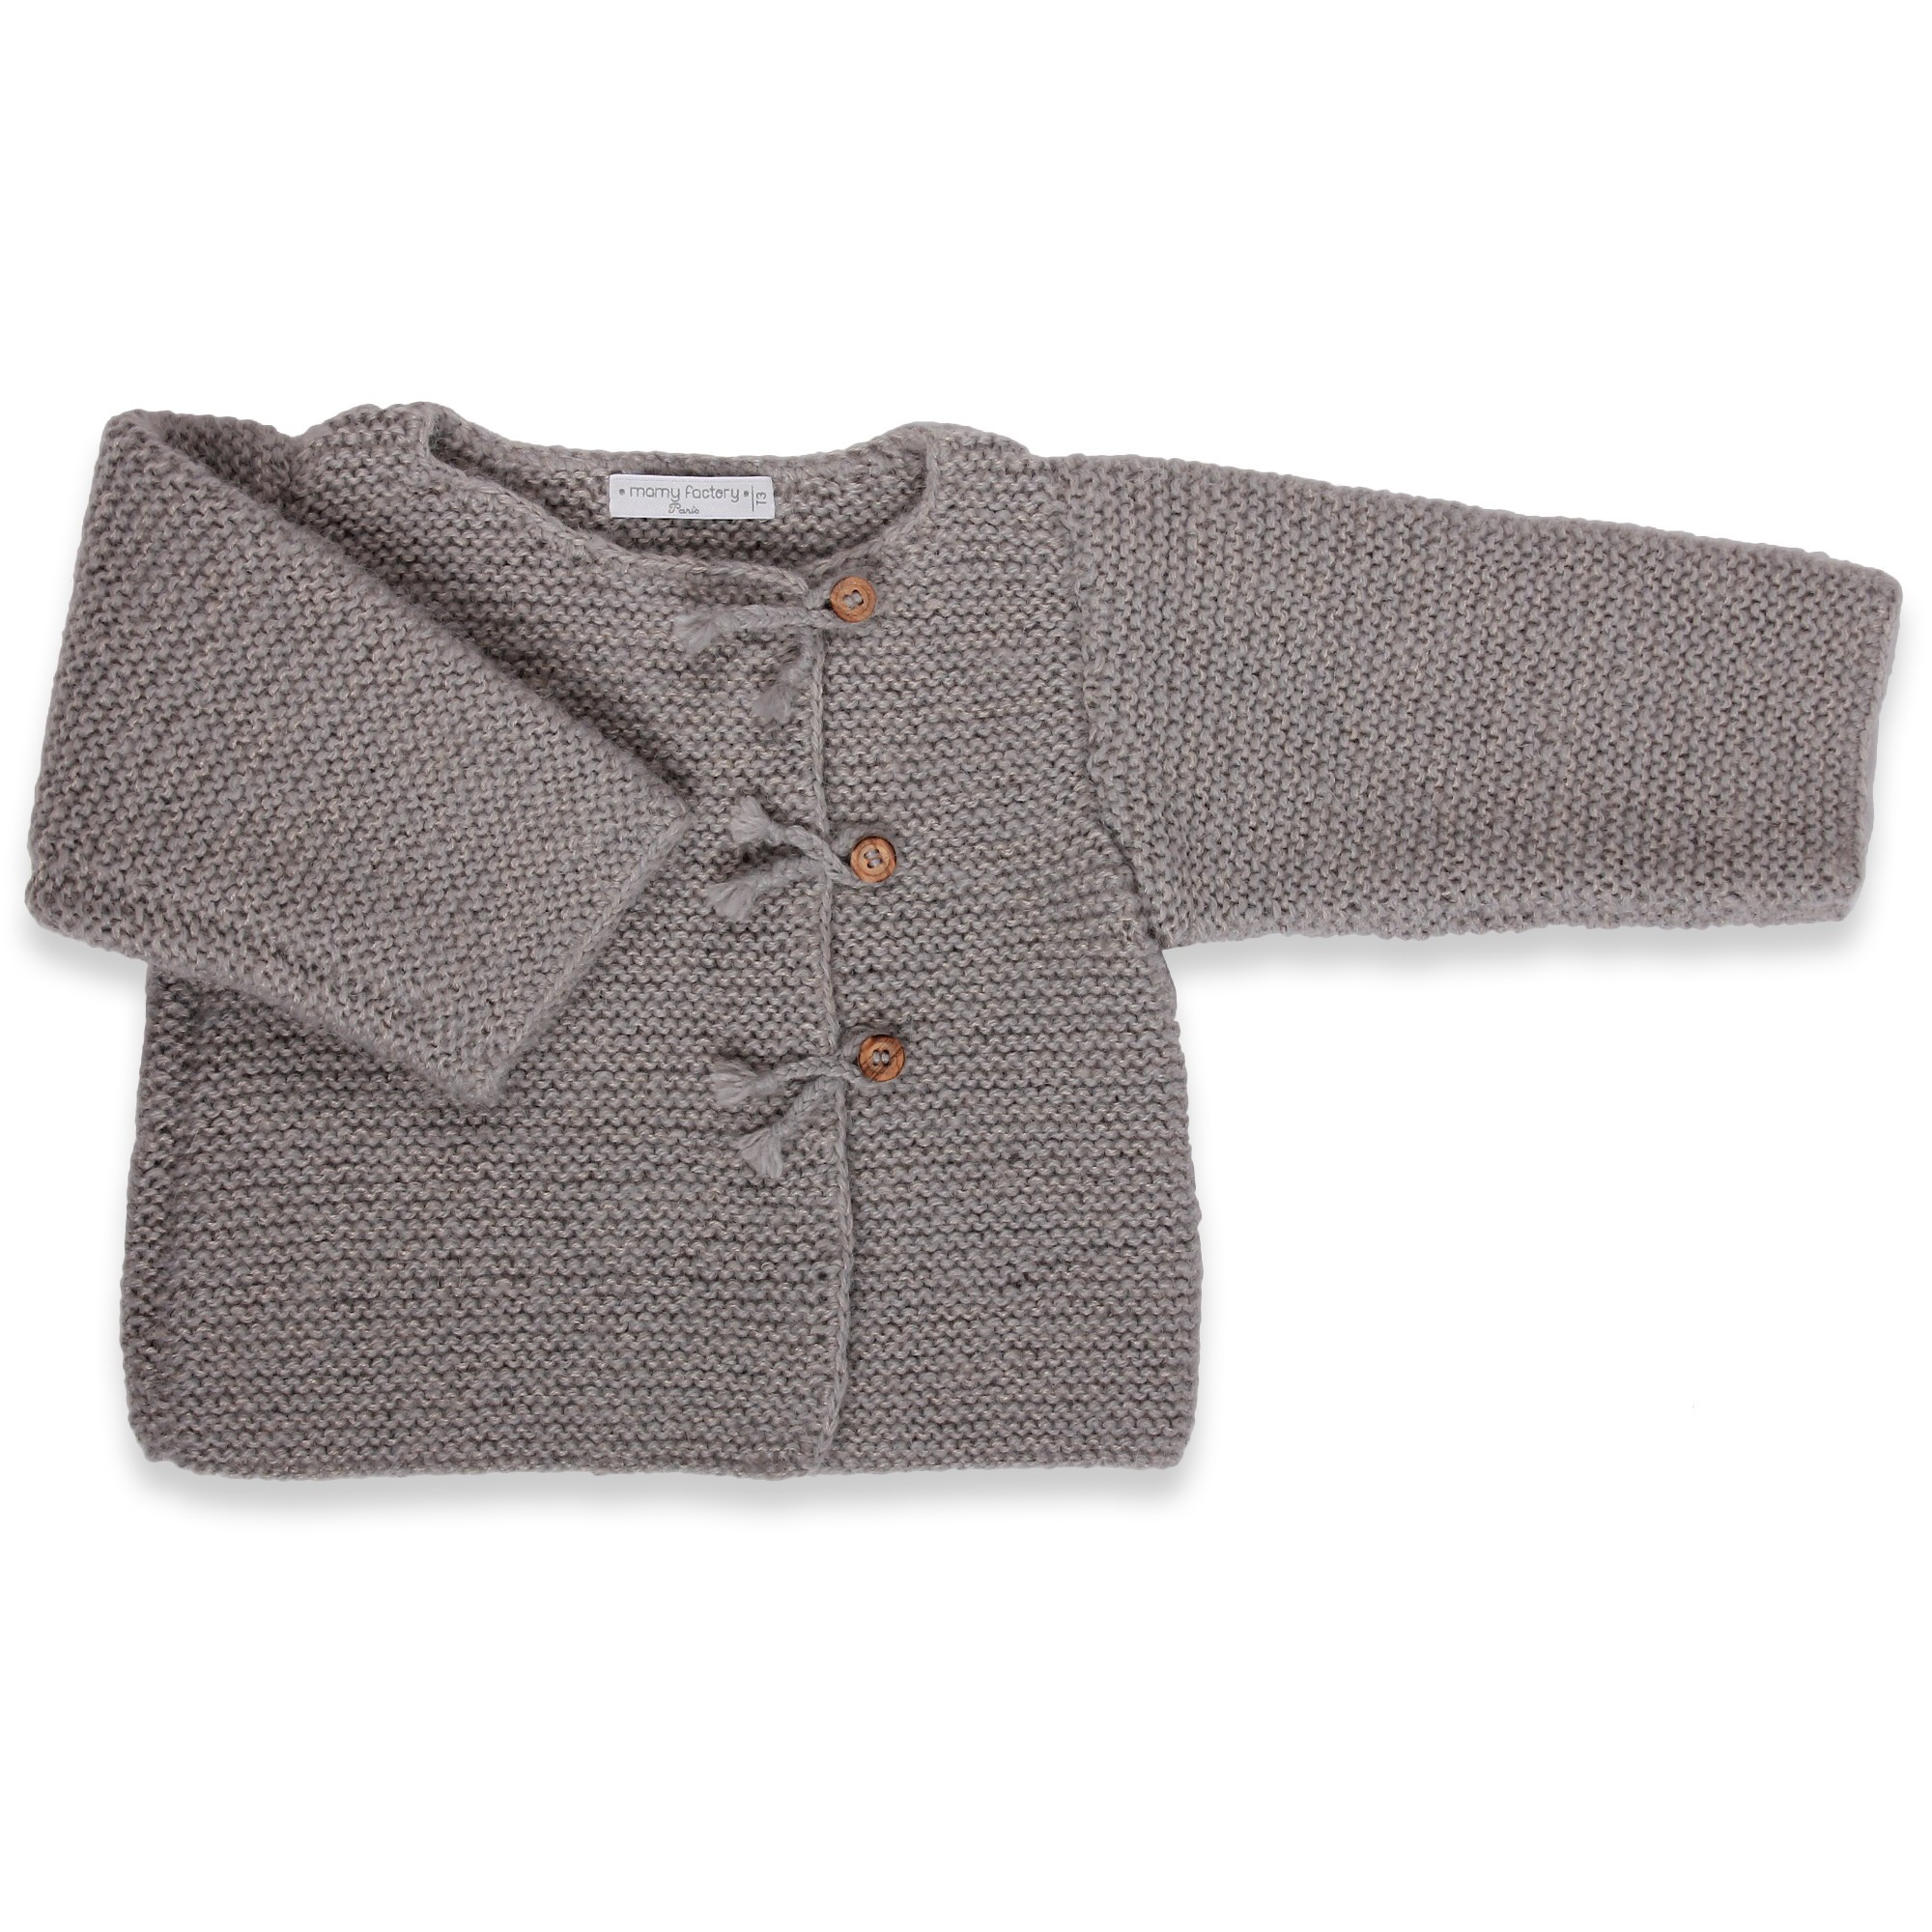 Grey baby cardigan with wood buttons made from wool and mohair